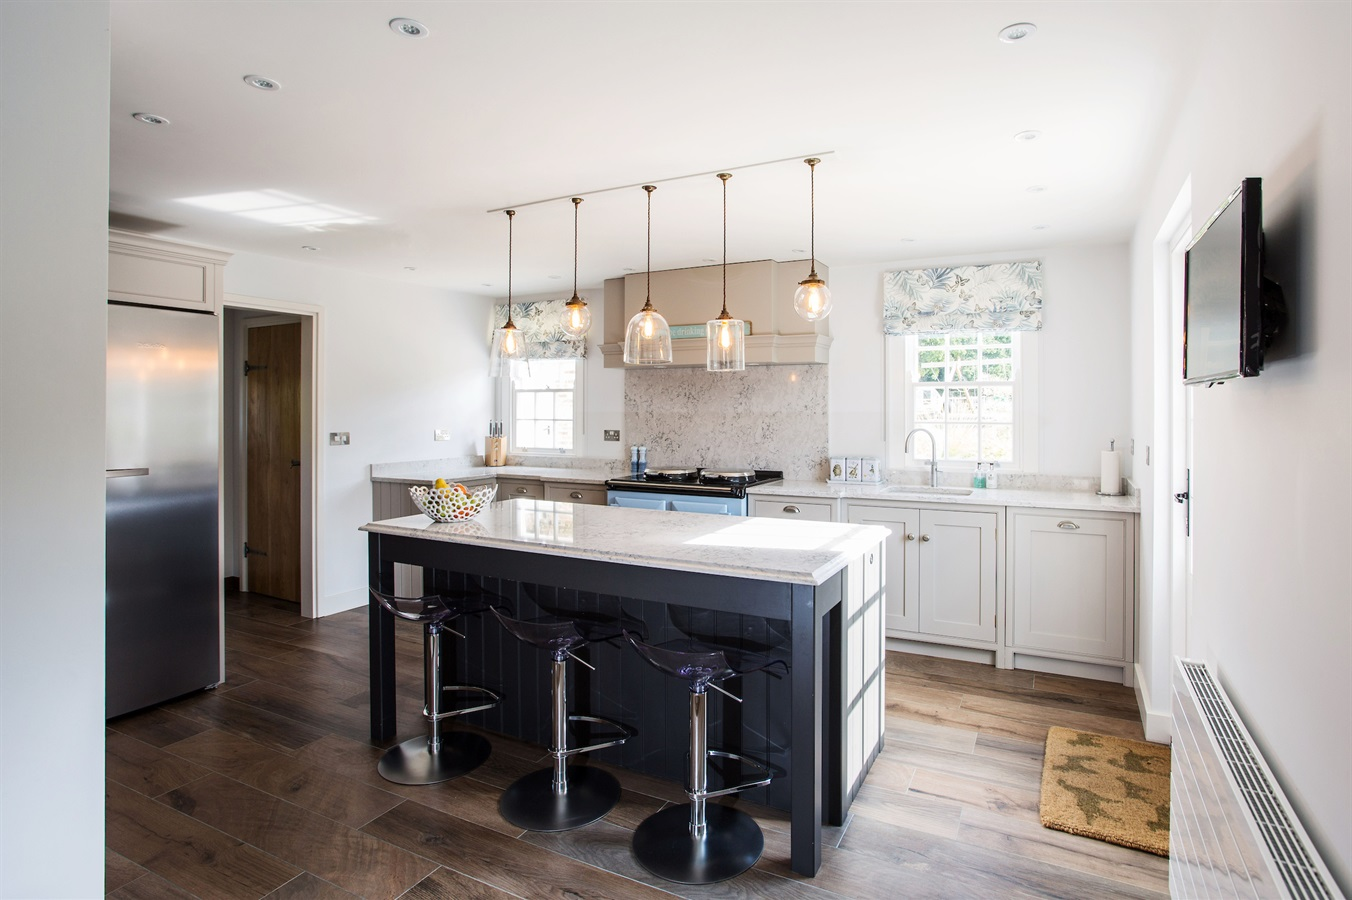 Burlanes Interiors - A Modern Country Kitchen